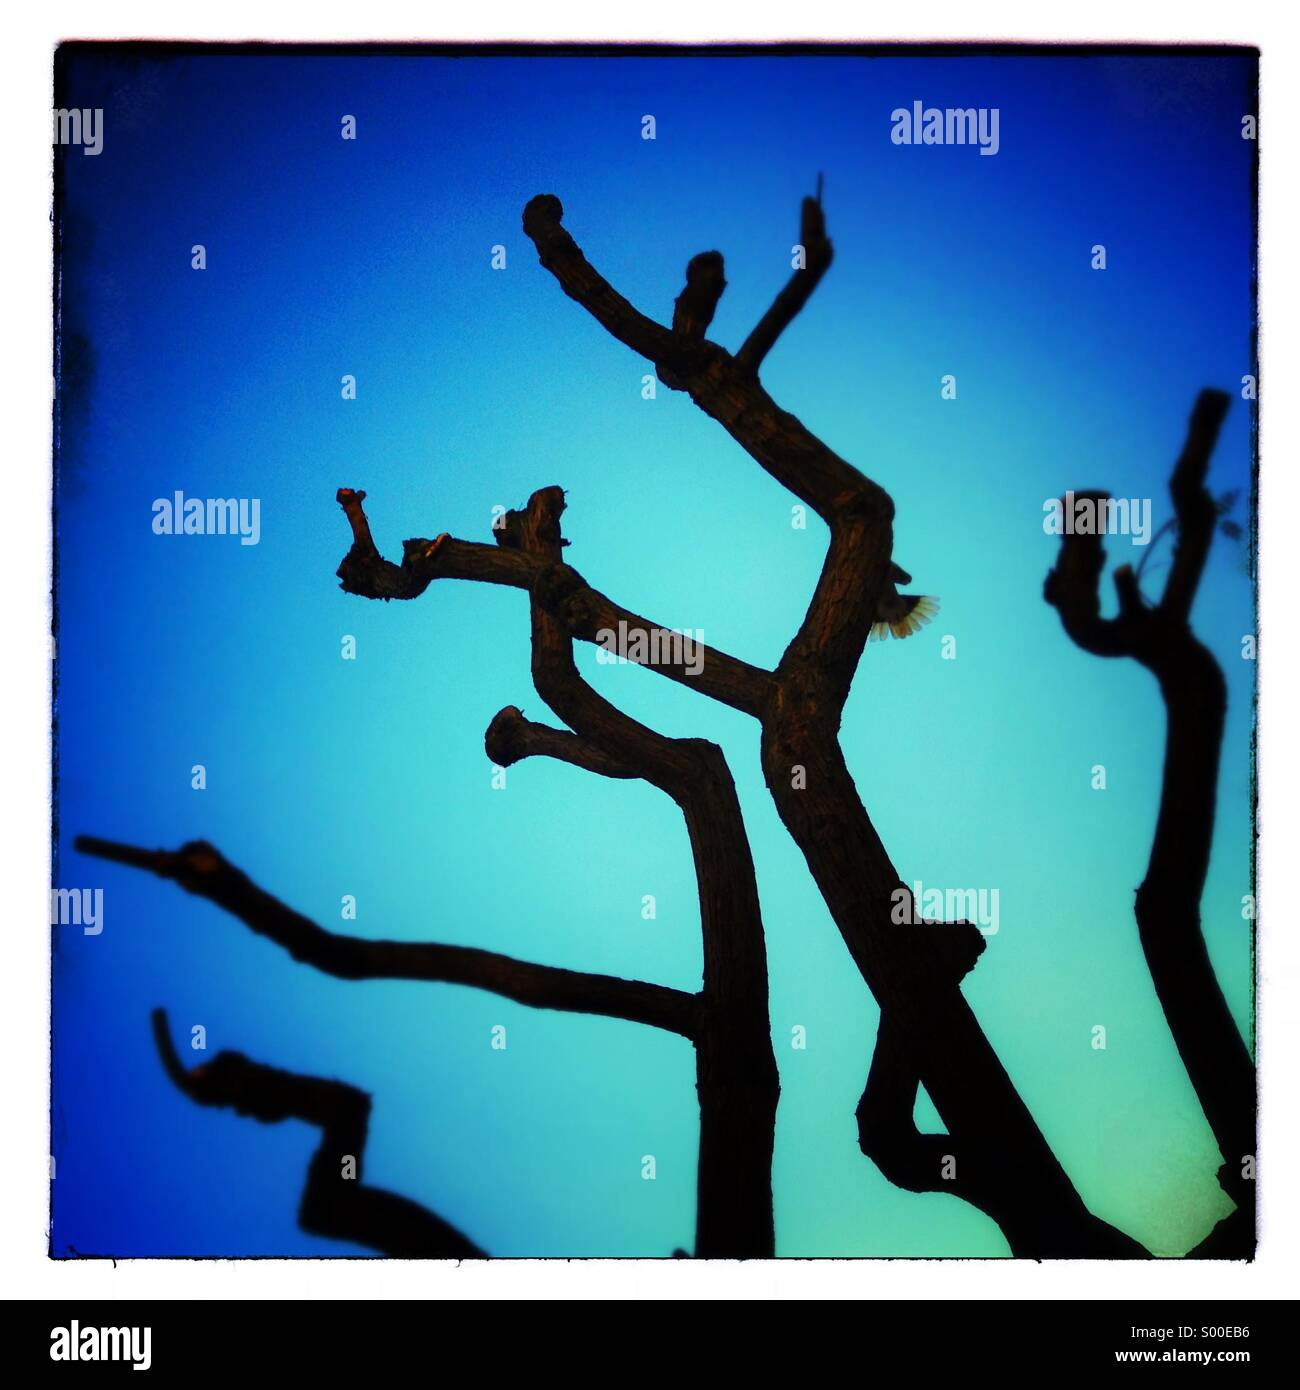 Tree branch silhouette in winter on blue sky - Stock Image